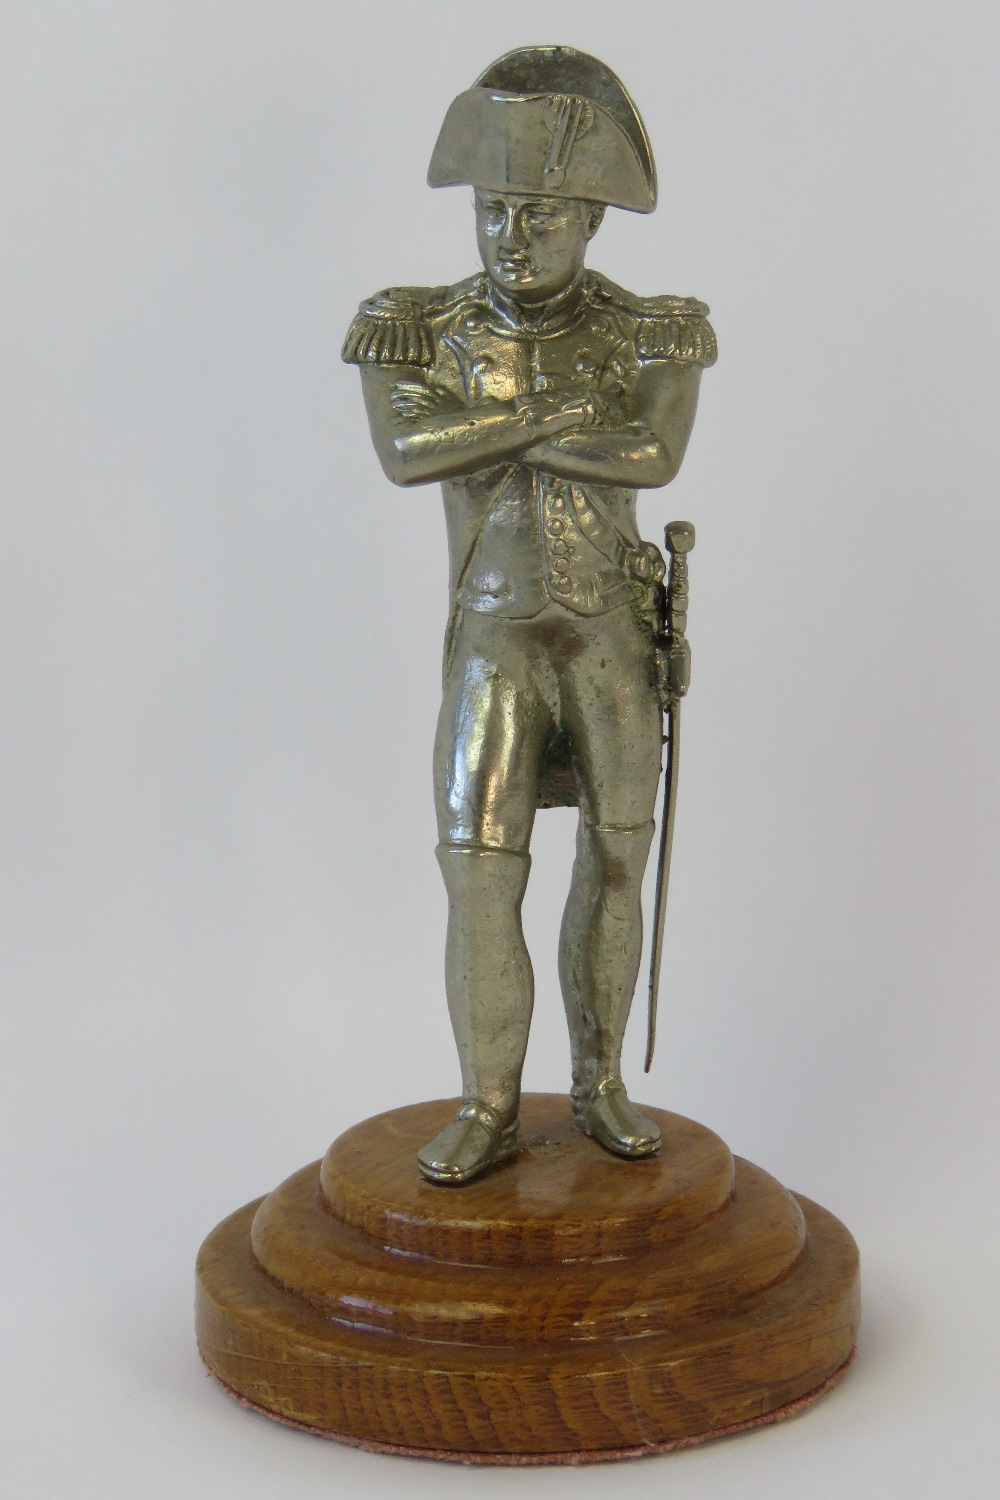 A 20th century cold cast figurine of Nap